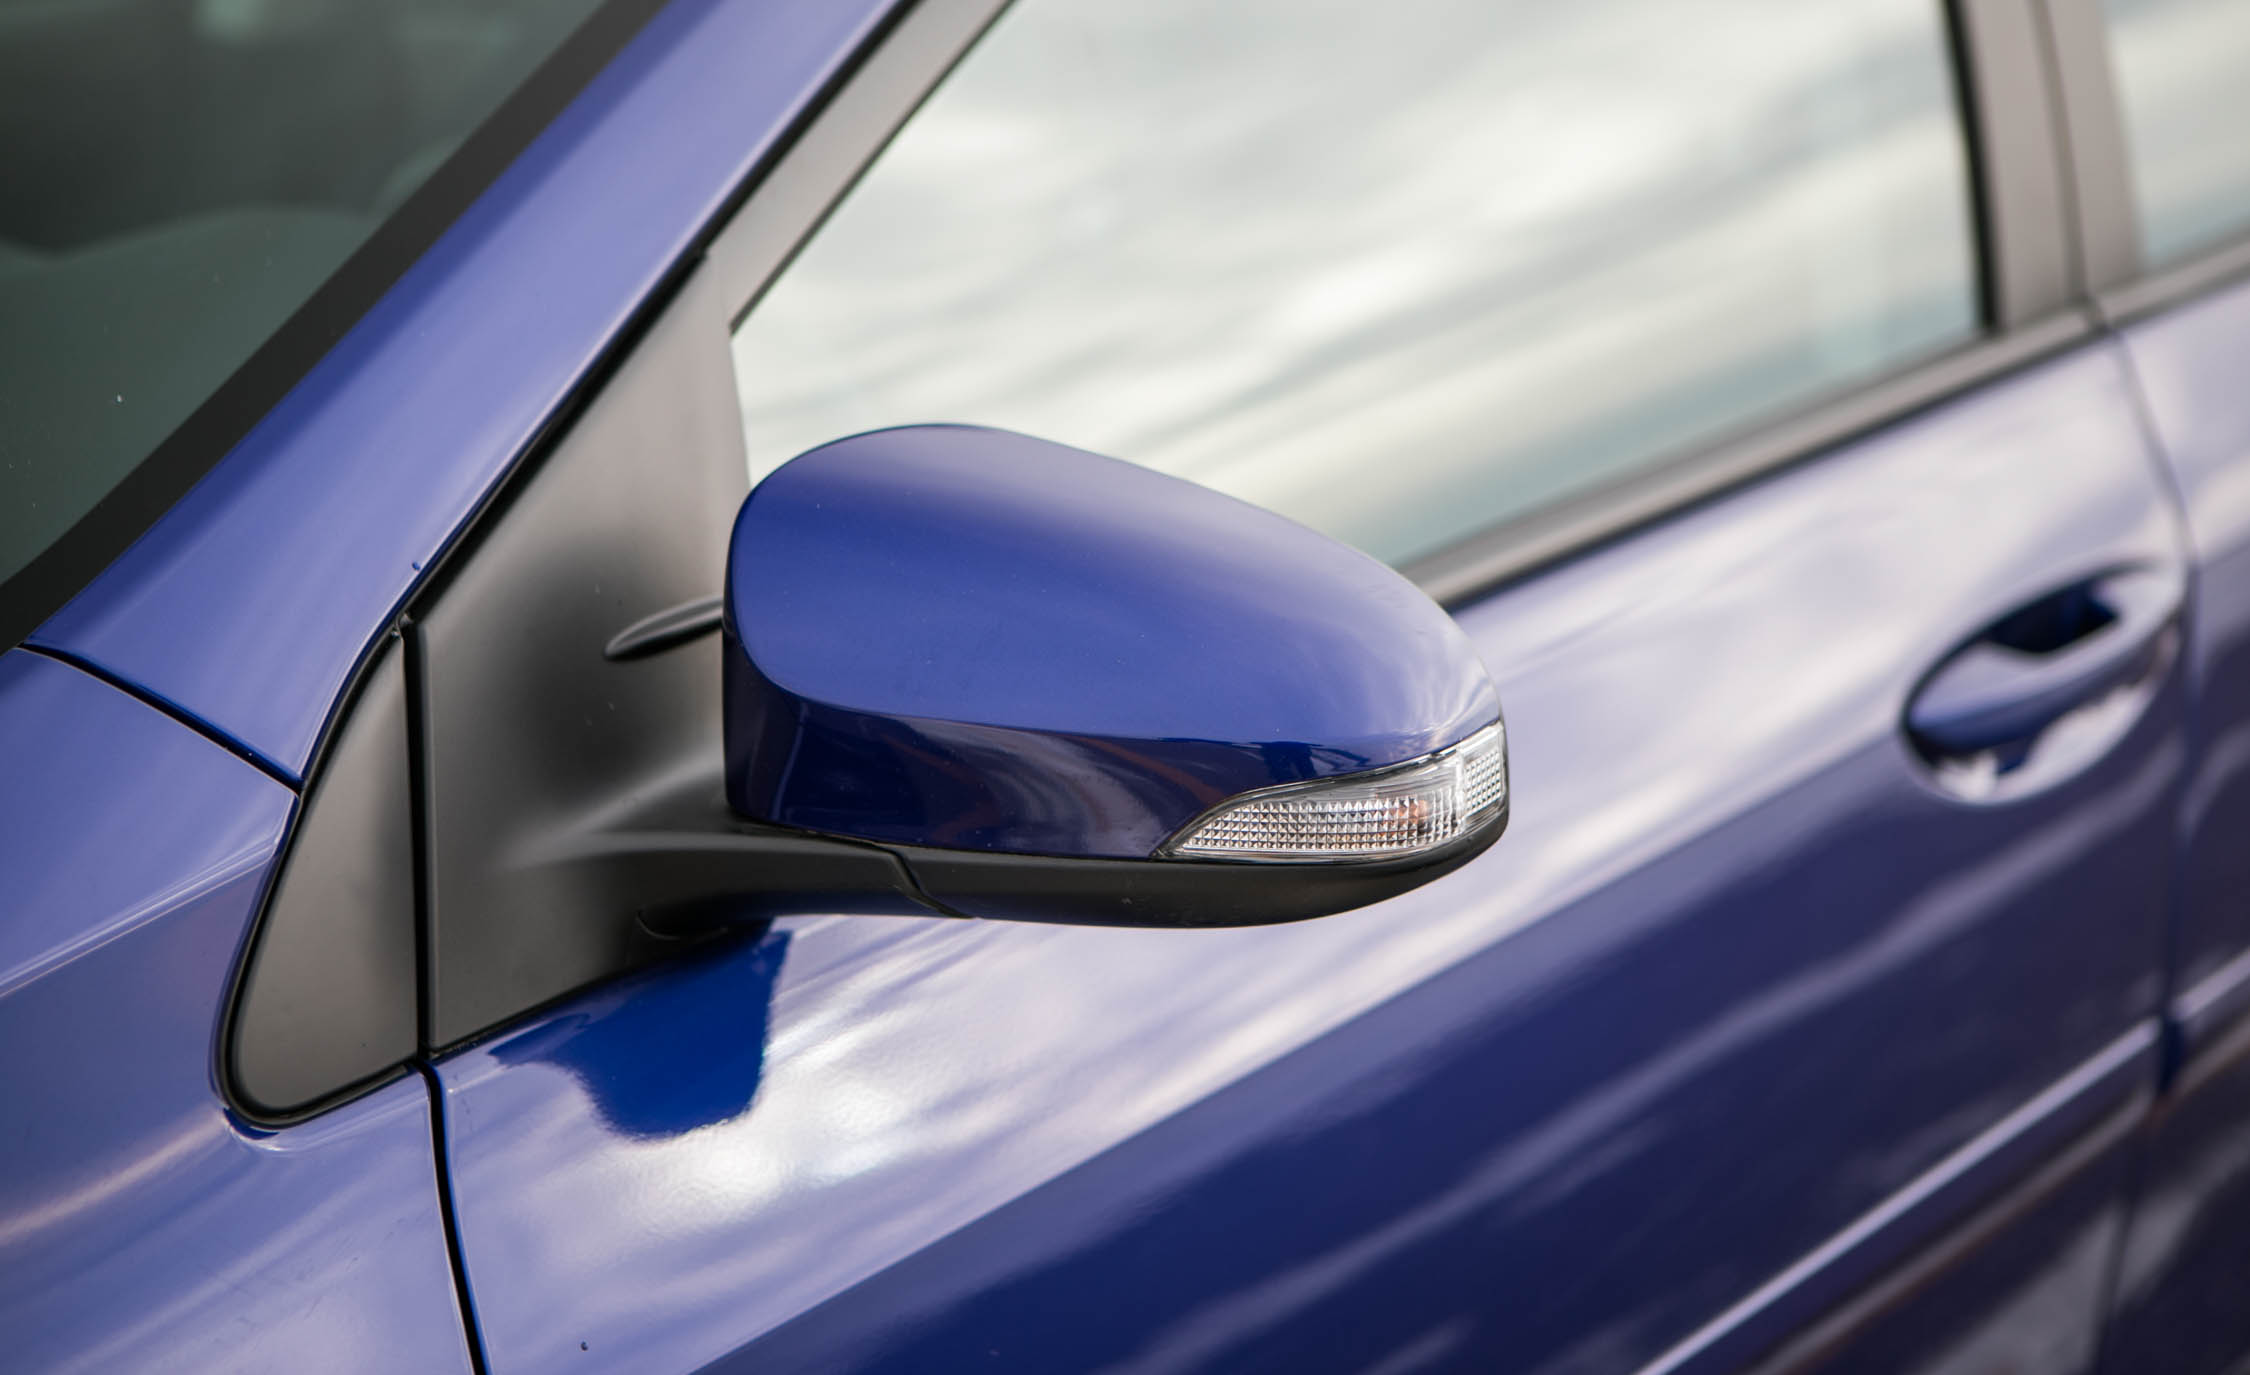 2017 Toyota Corolla XSE Exterior View Side Mirror (Photo 46 of 75)